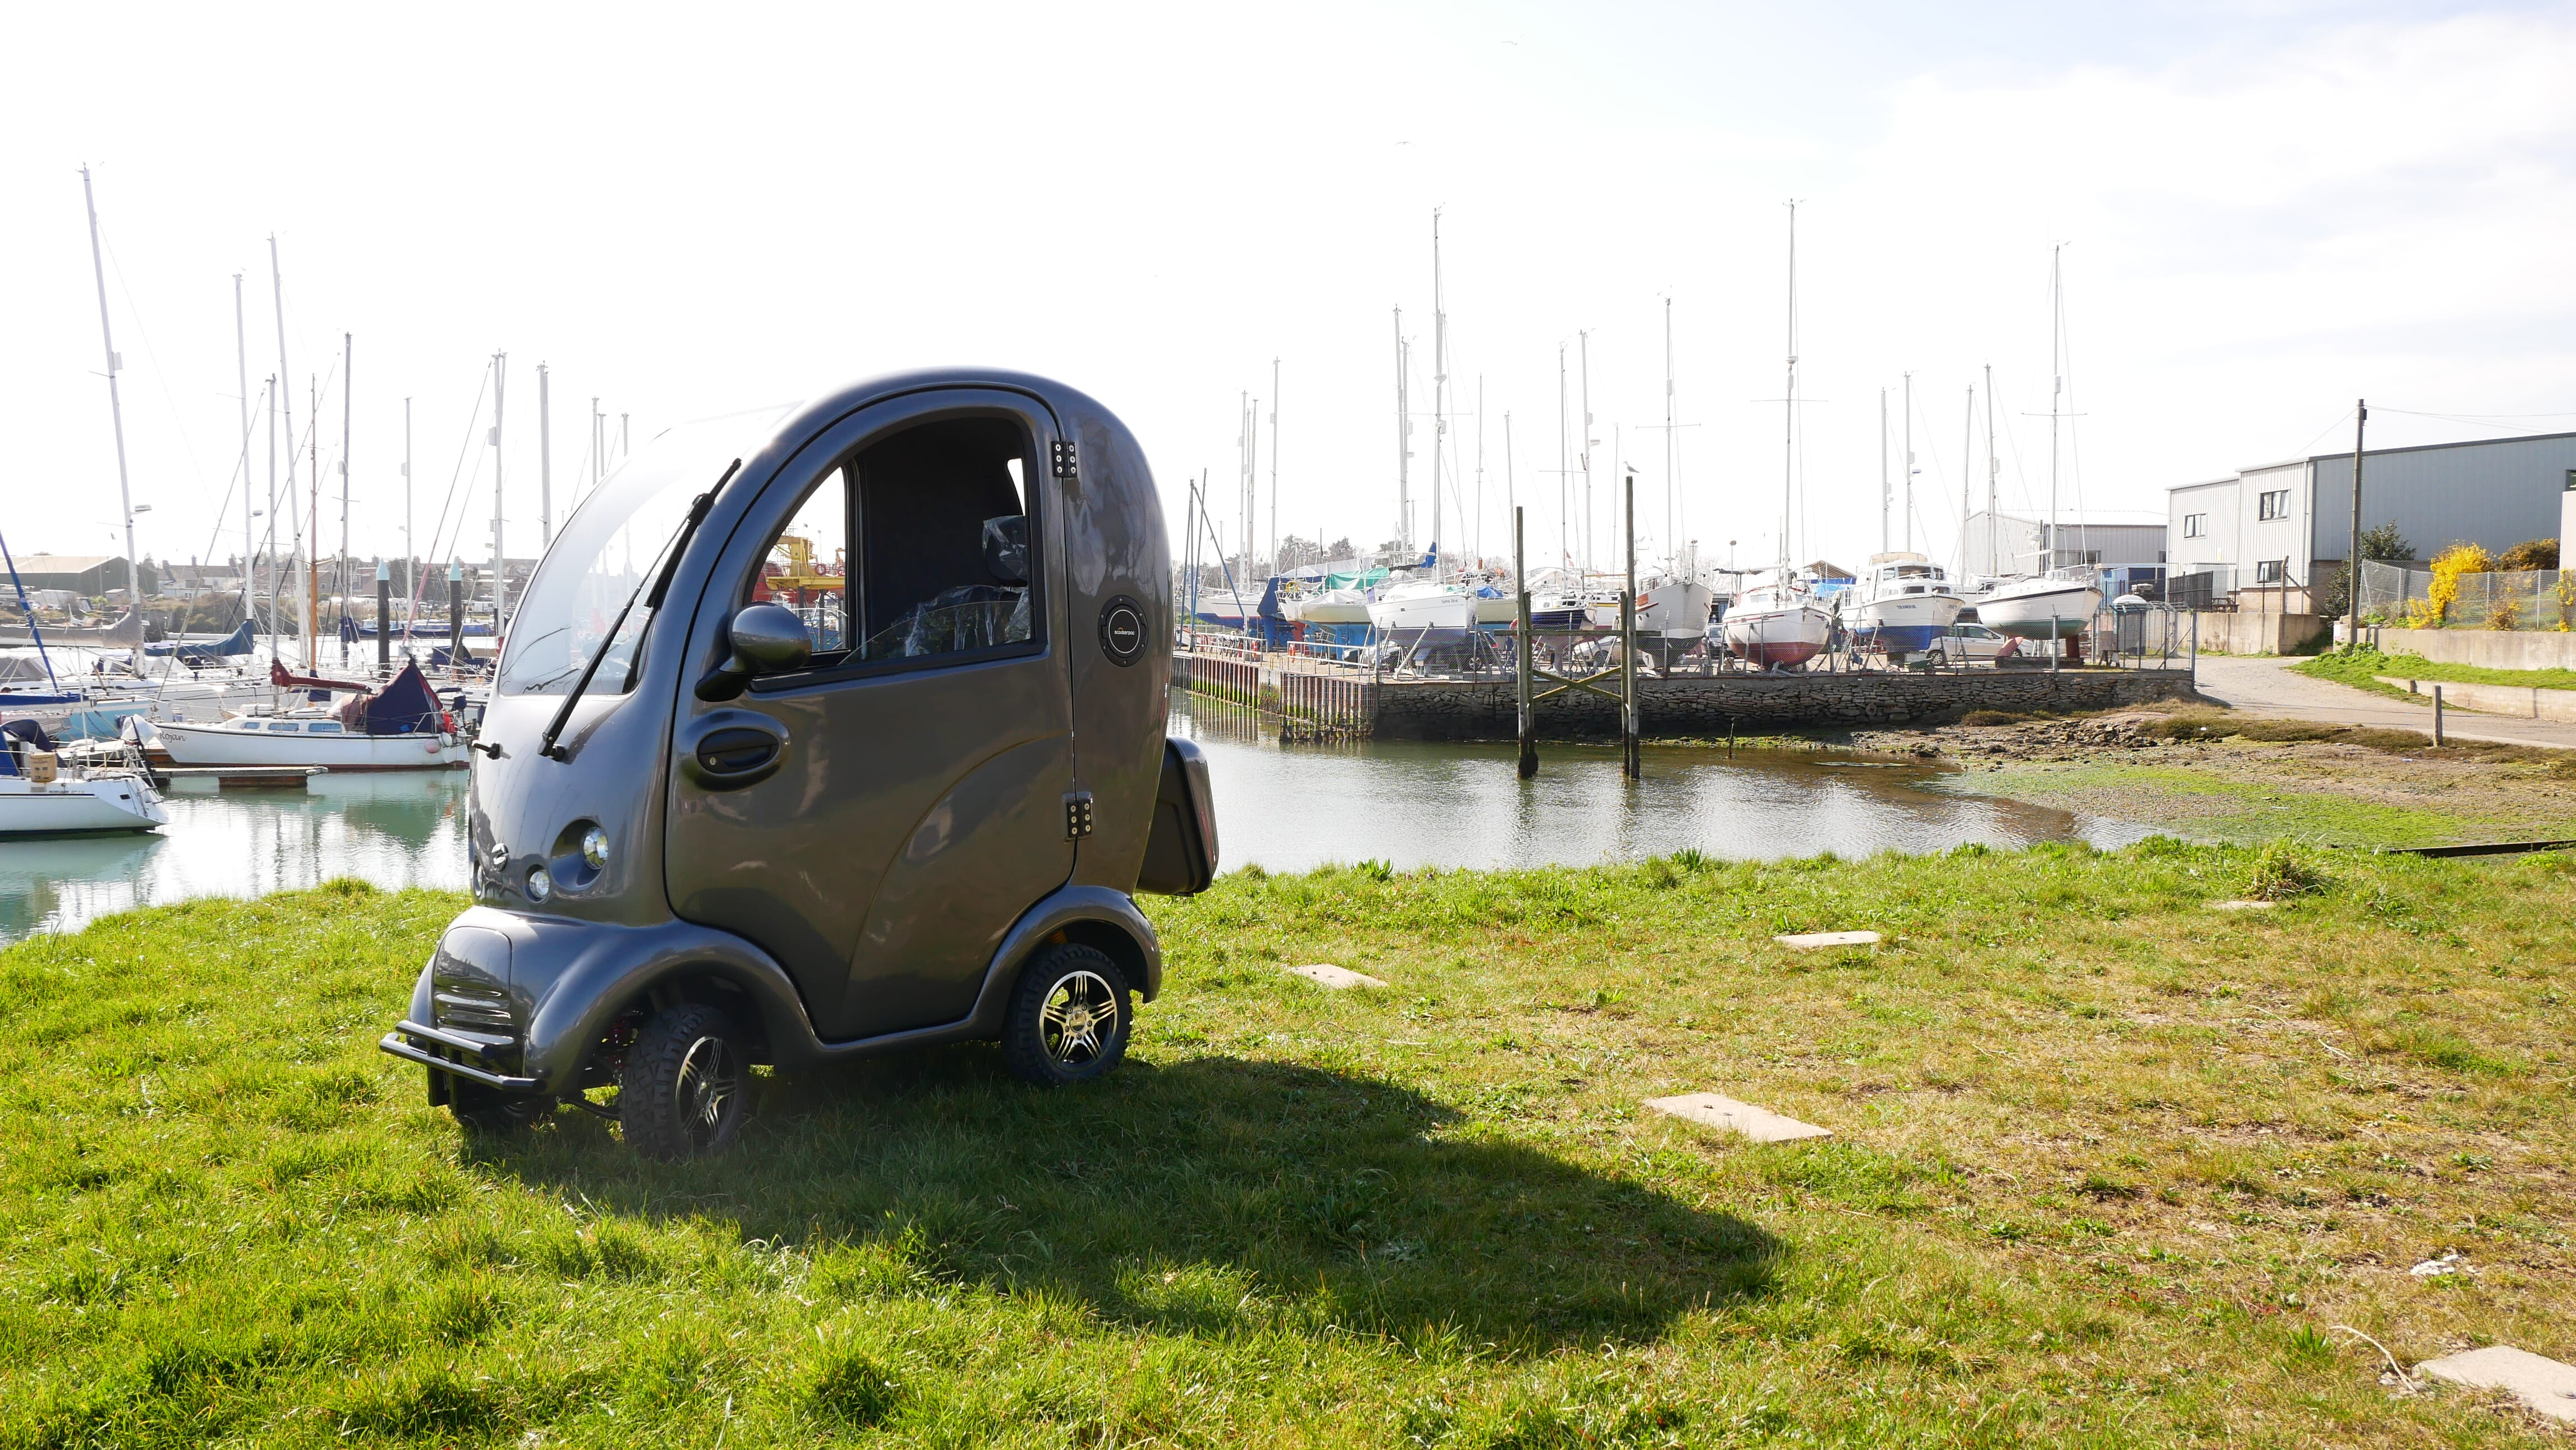 Scooterpac Cabin Car in exclusive bespoke grey colour